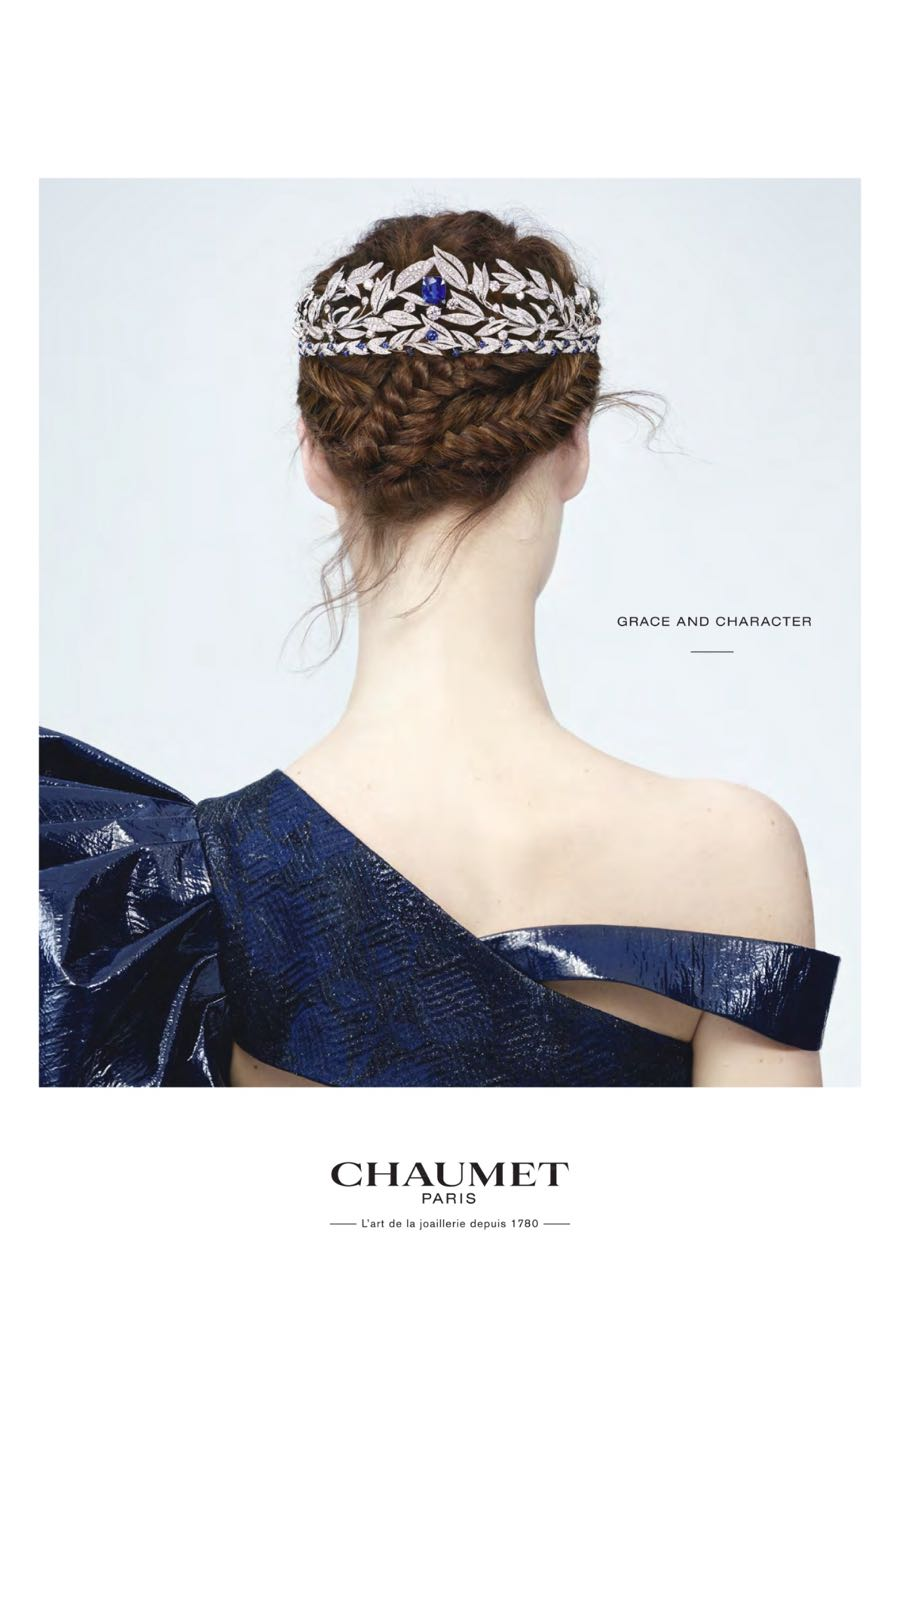 Chaumet Jewellery Advert Vogue